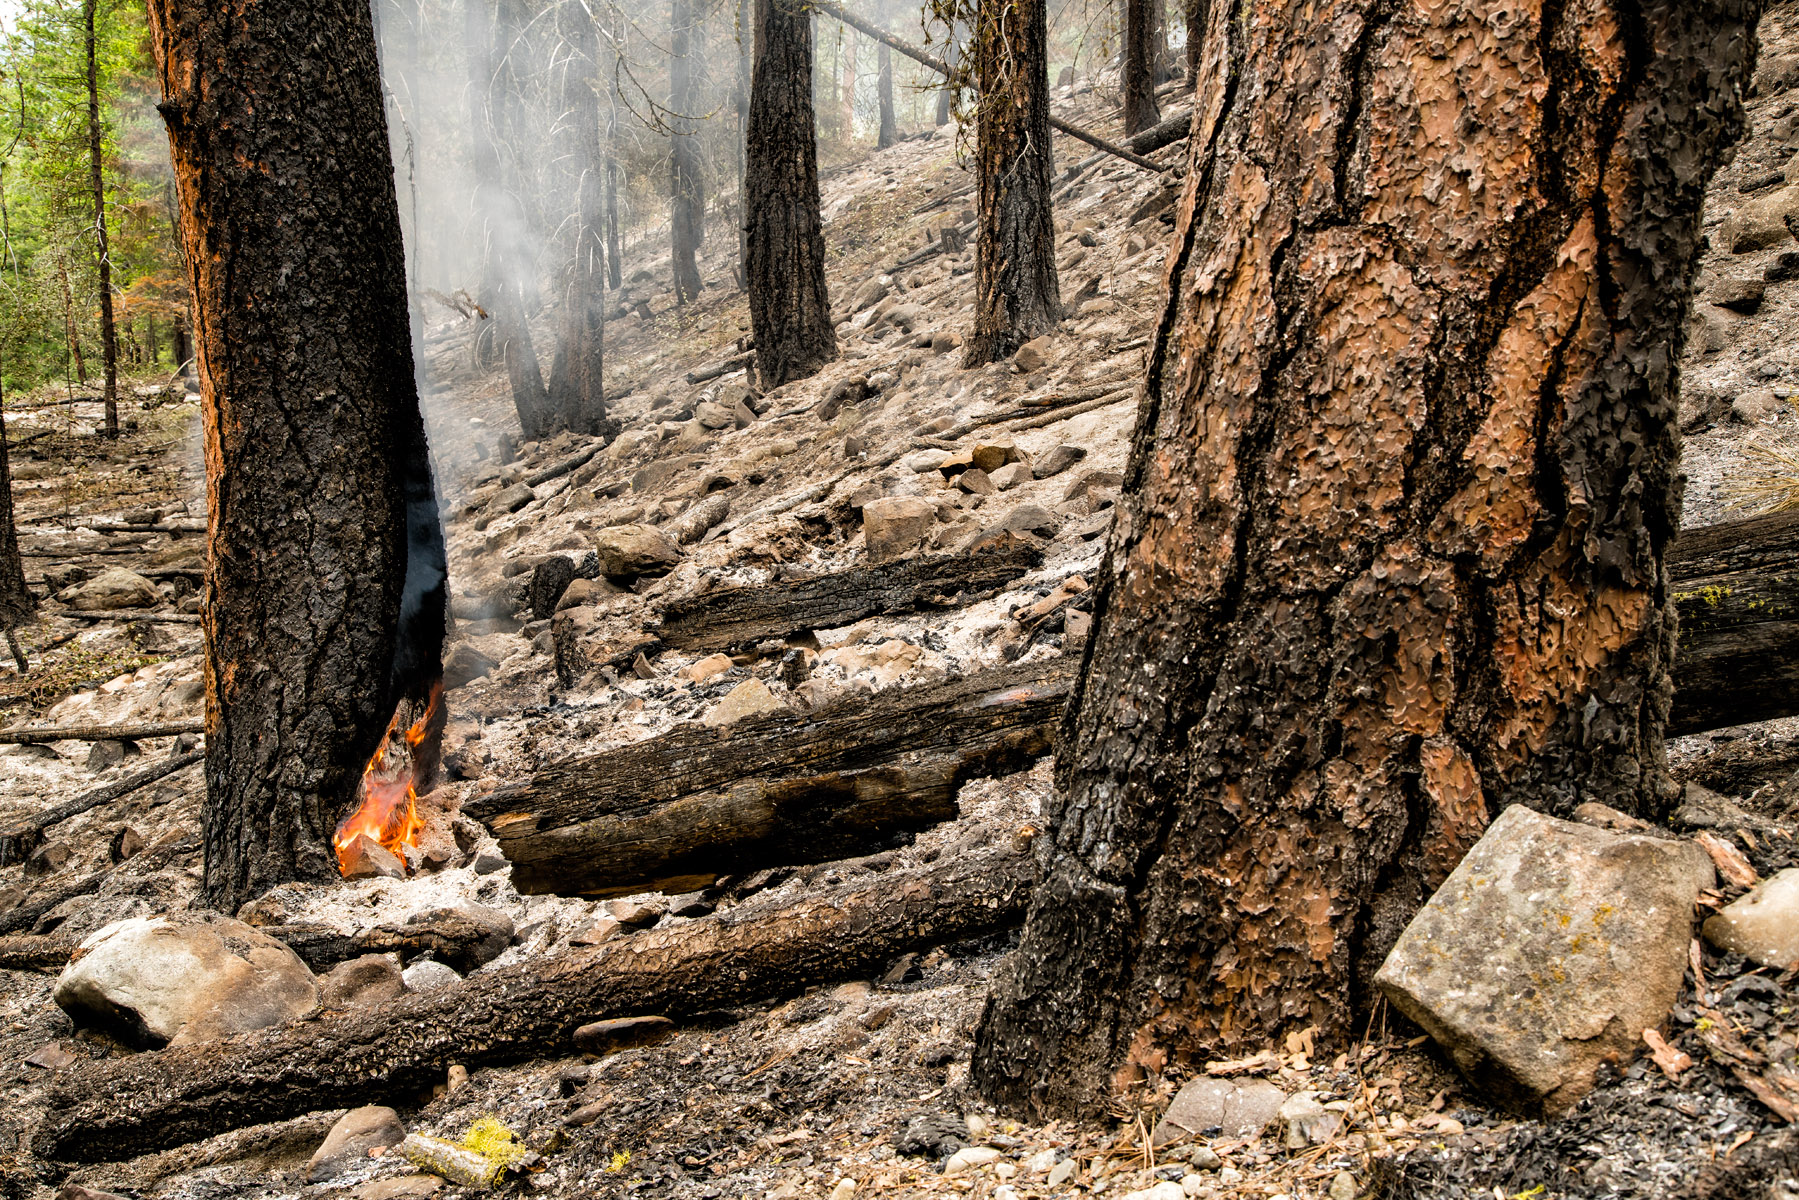 Conservation: A prescribed burn smolders in the Methow Valley, Washington